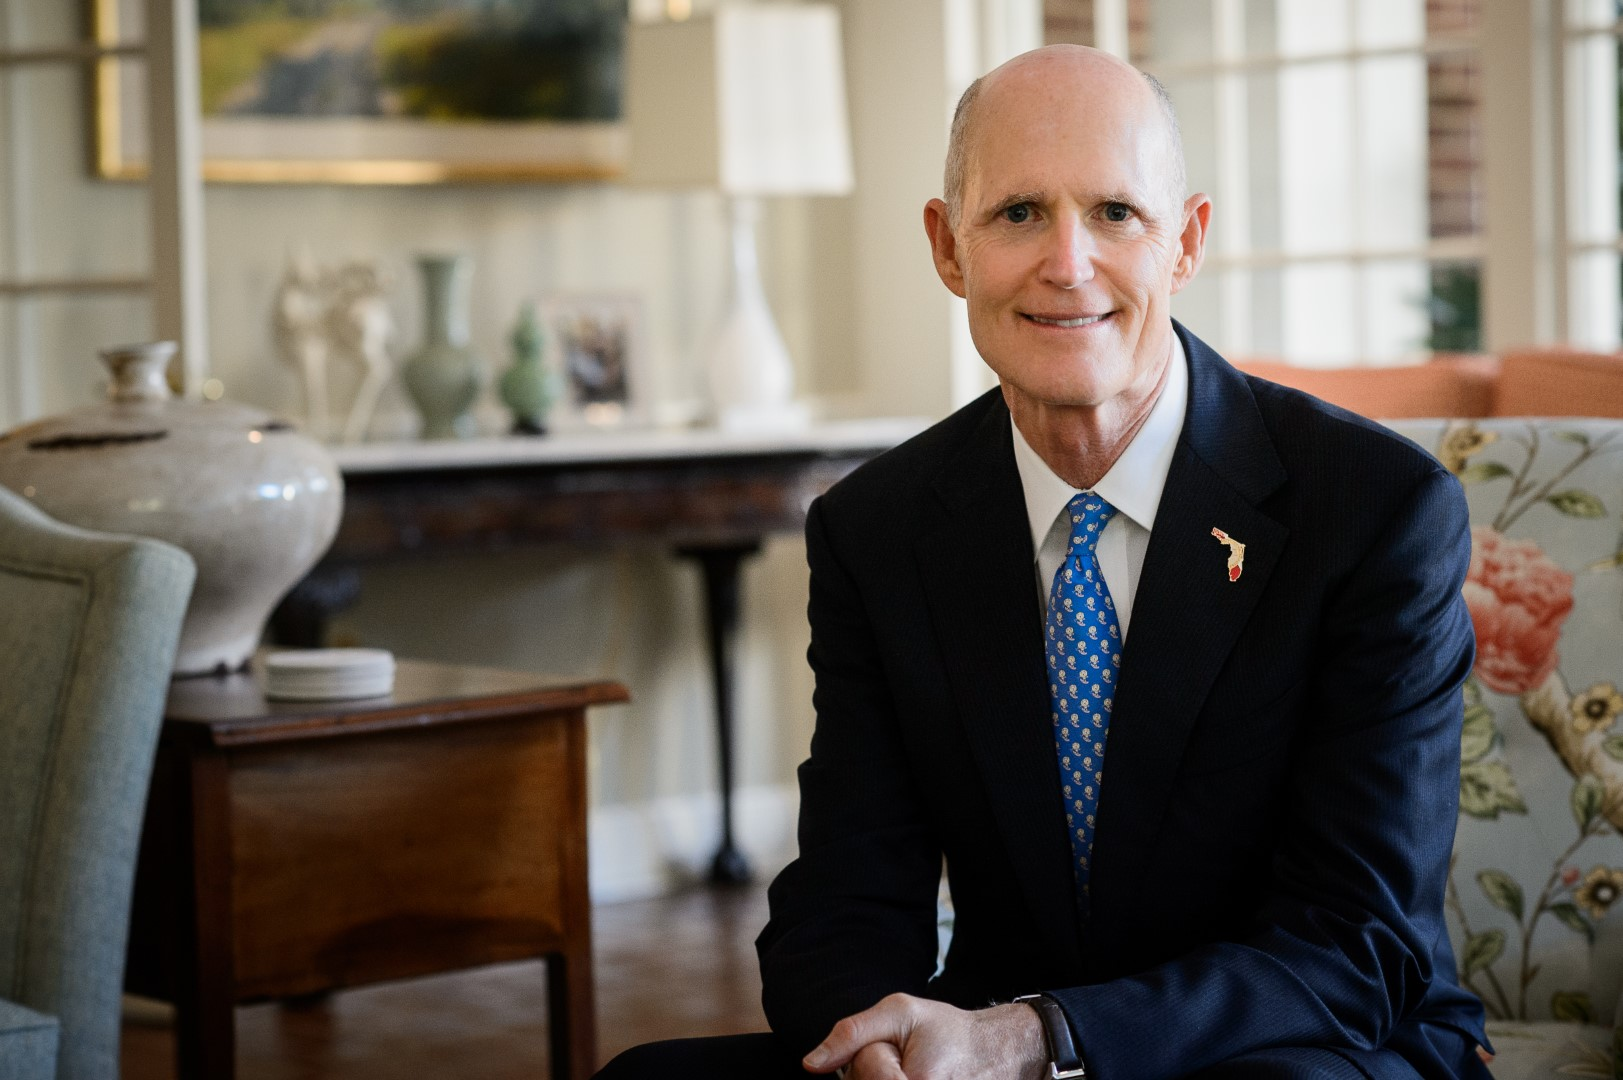 SEN-RICK-SCOTT-6-Large.jpg